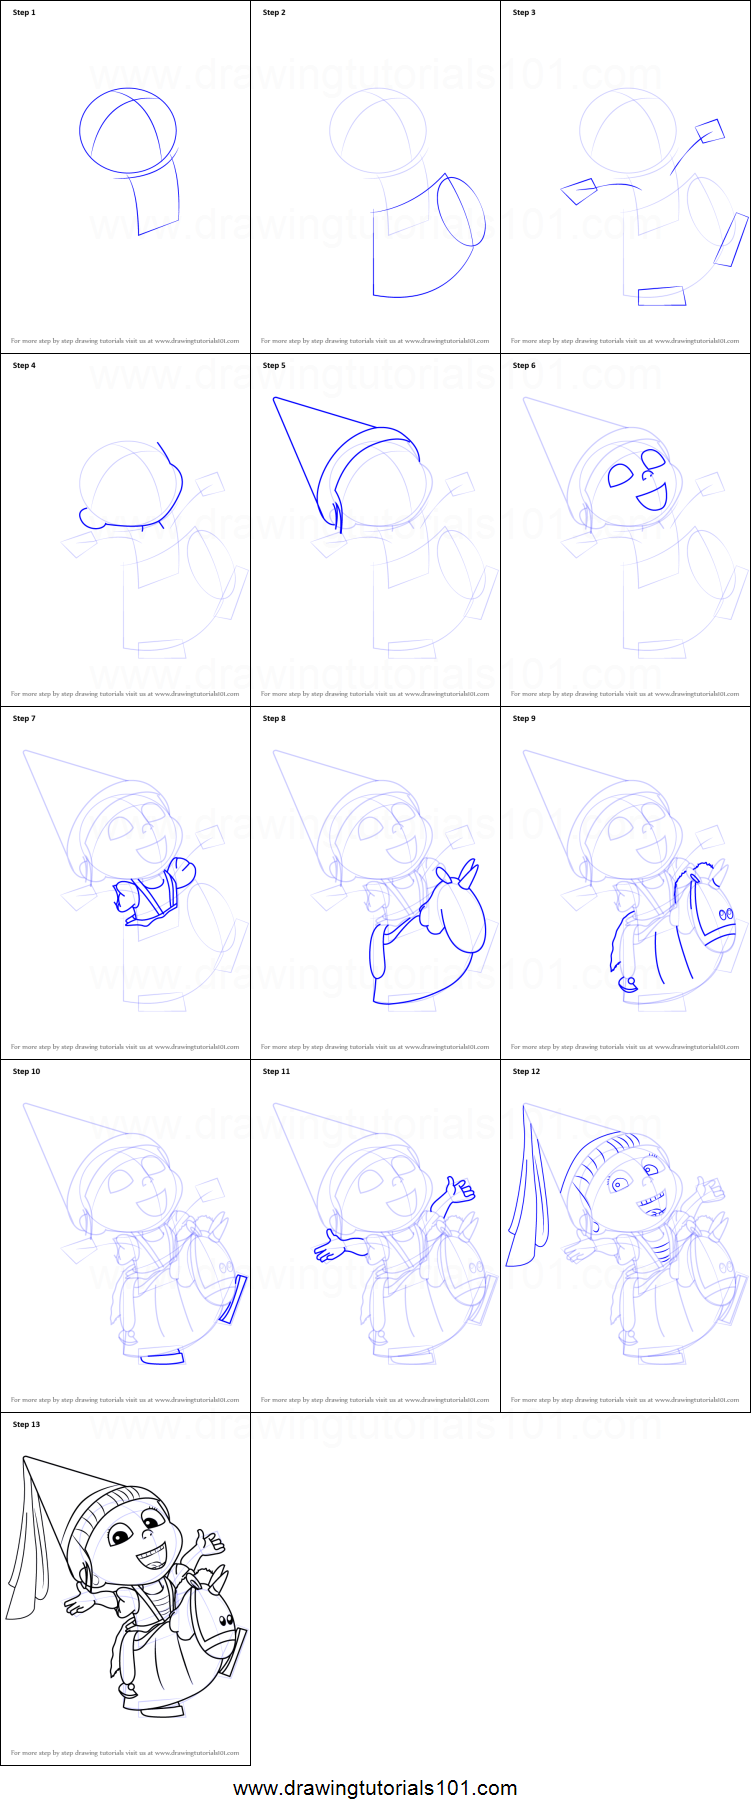 https://www.drawingtutorials101.com/drawing-tutorials/Cartoon-Movies/Despicable-Me/agnes/How-to-Draw-Agnes-from-Despicable-Me-step-by-step.png